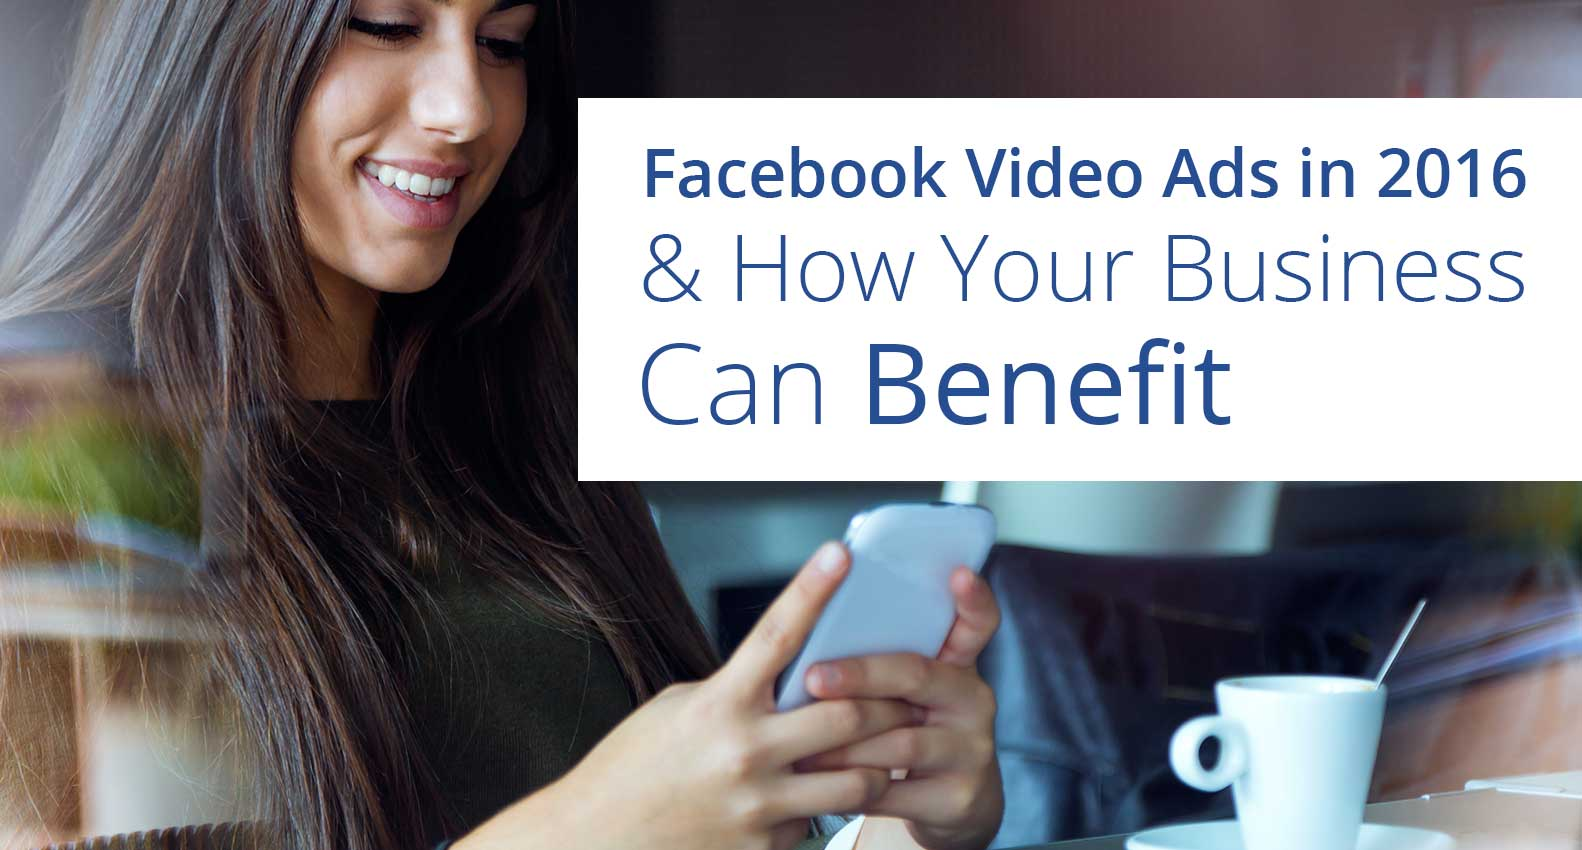 Benefit of Facebook Video Ads